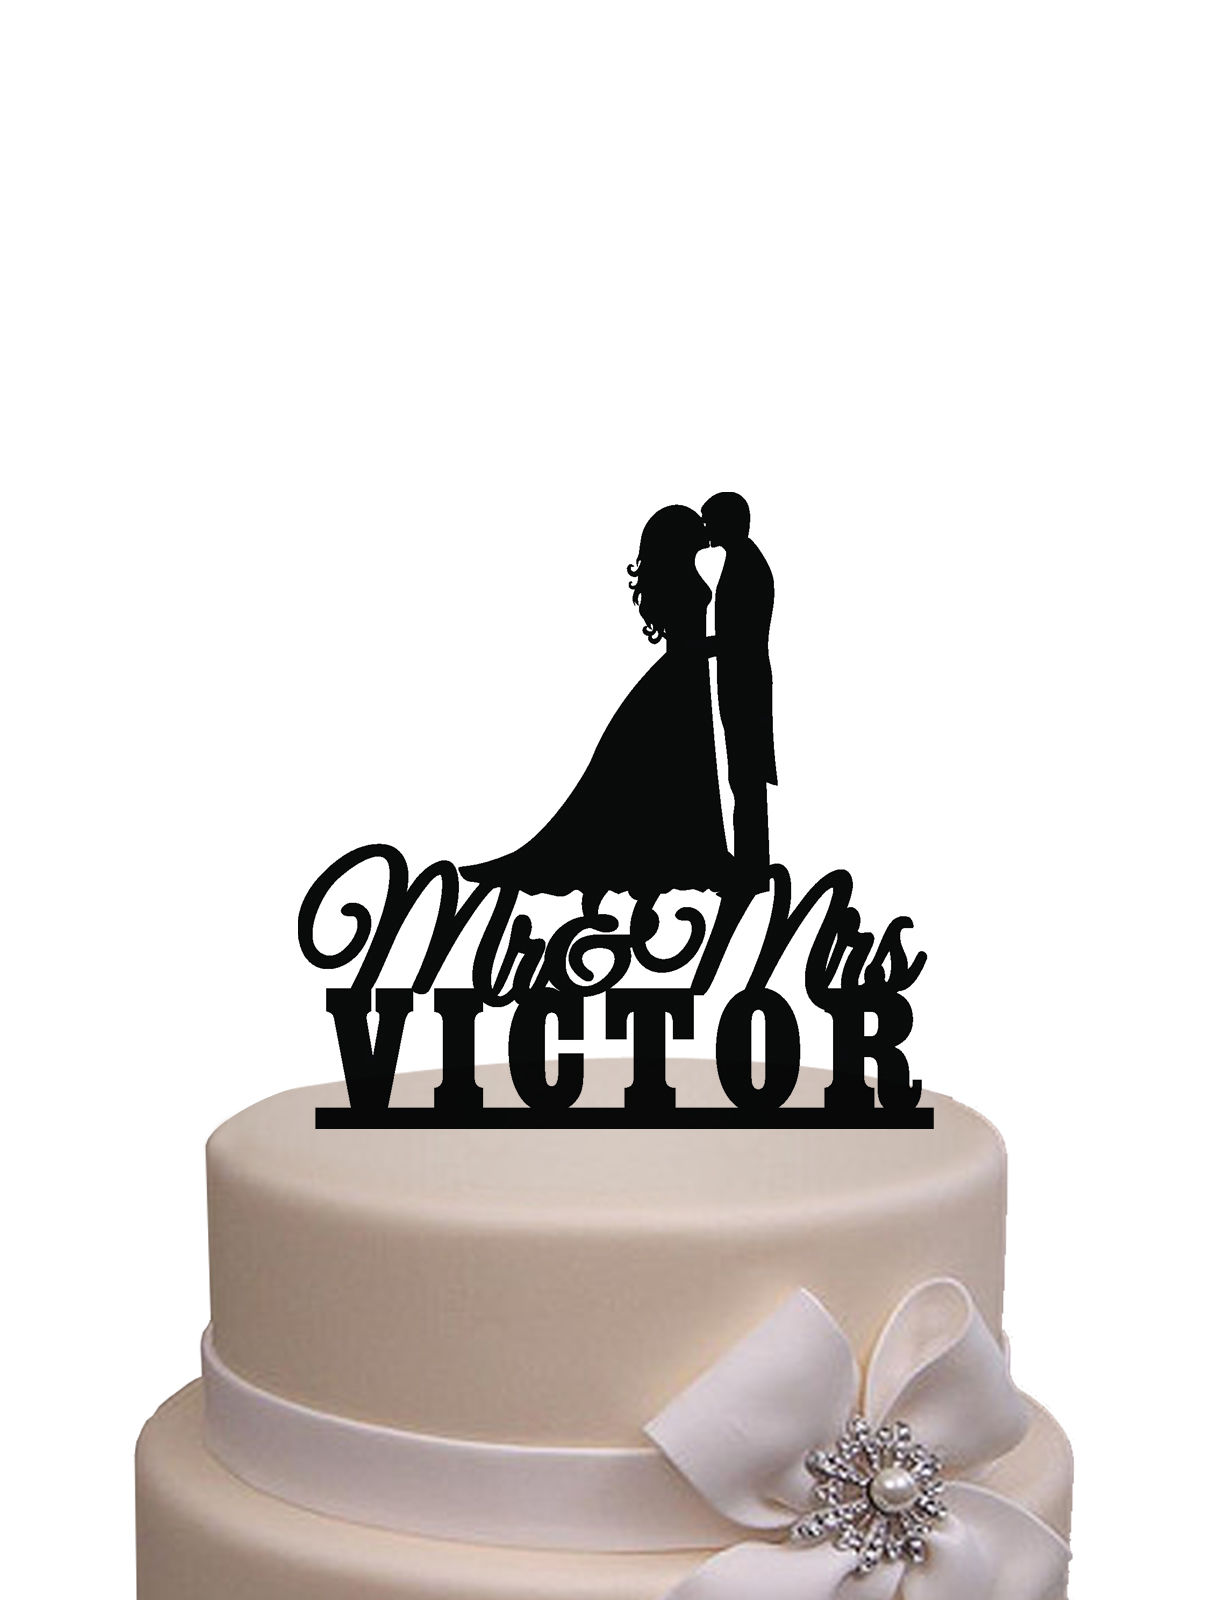 Name Cake Toppers - Shop Name Cake Toppers Online